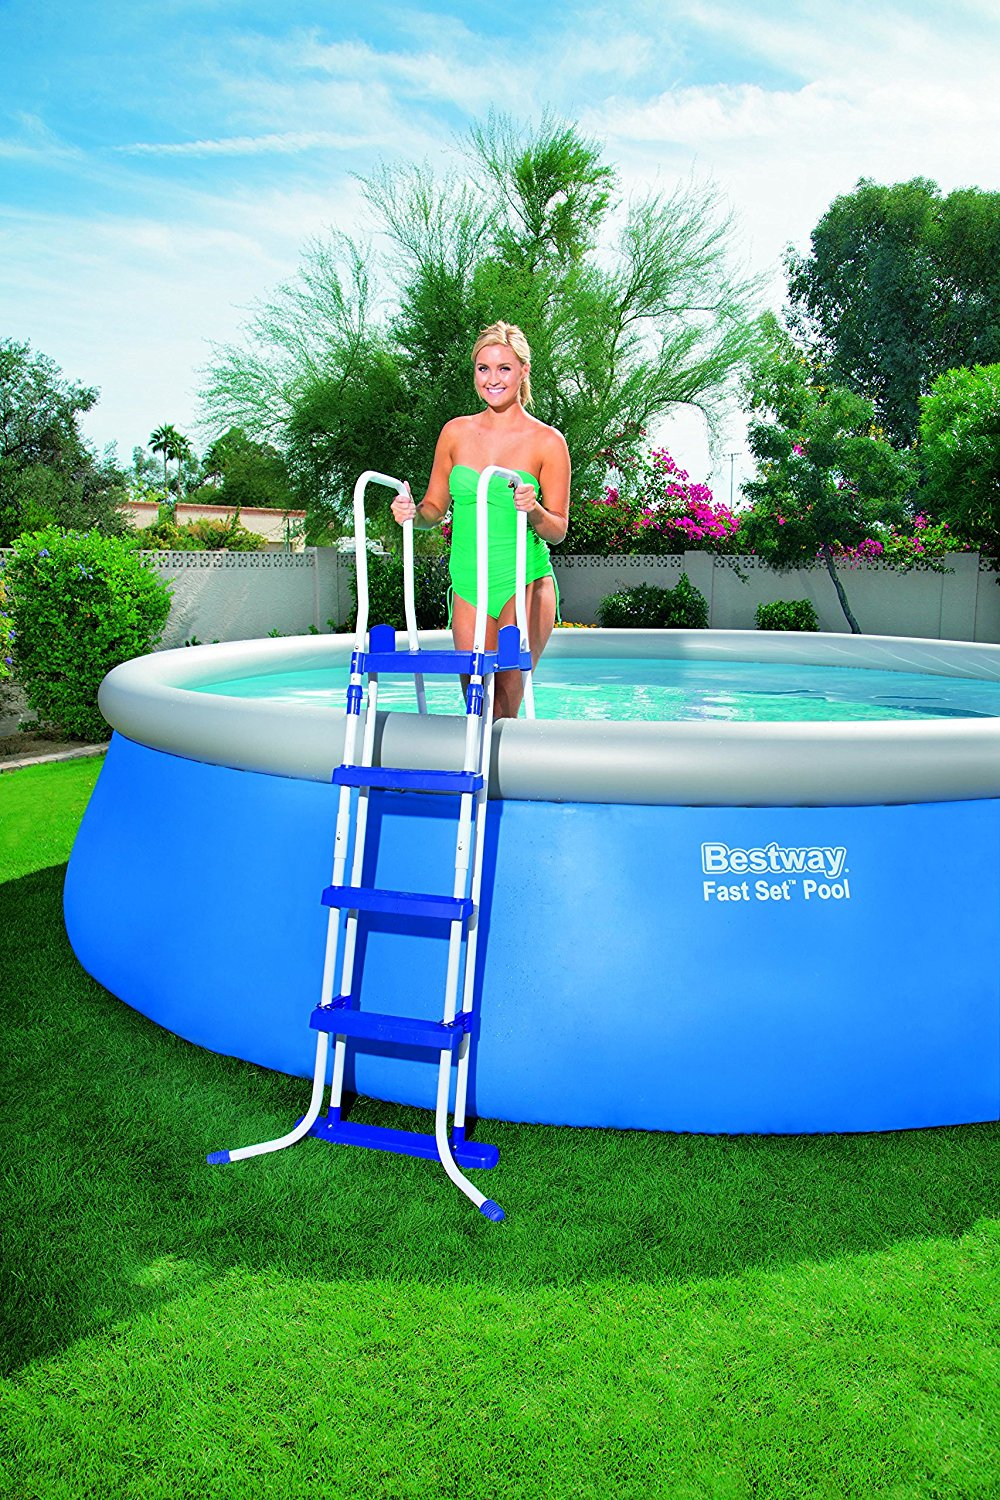 bestway 14ft rattan swimming pool filter pump ladder garden steel pro frame set ebay. Black Bedroom Furniture Sets. Home Design Ideas